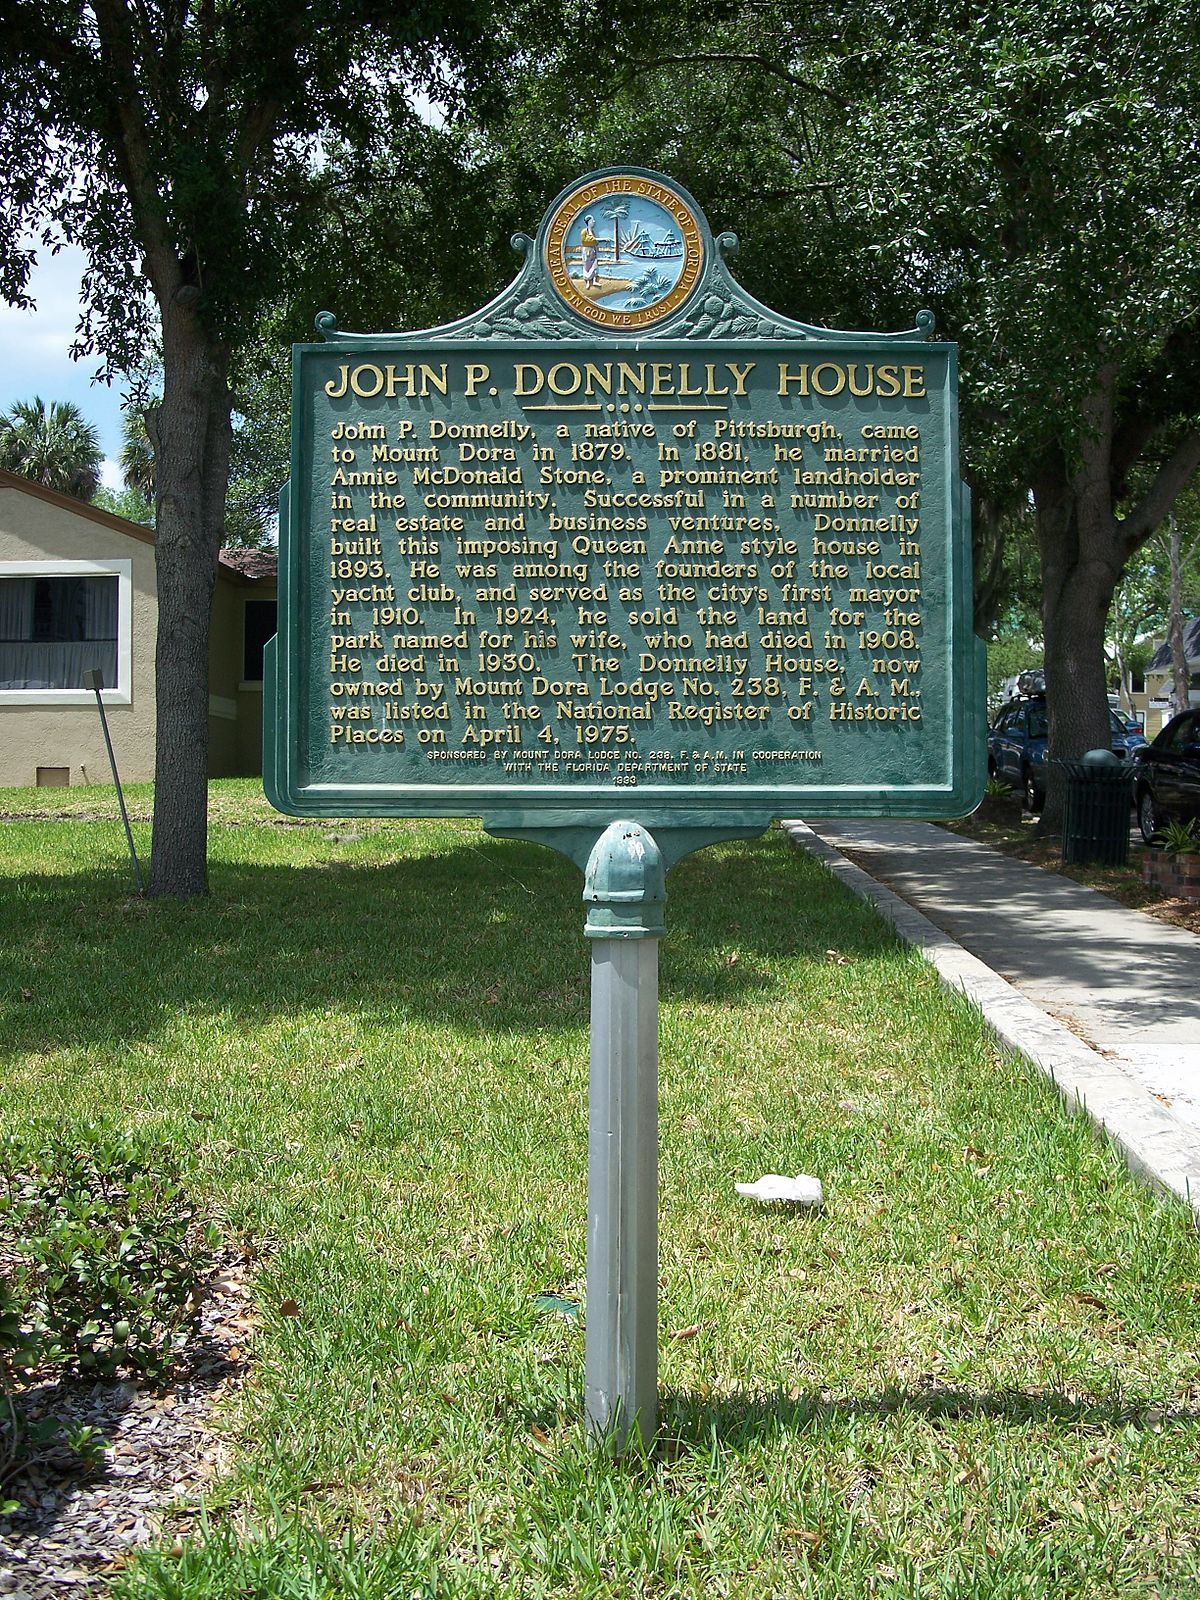 Donnelly house mount dora florida wikimedia commons for Donnelly house